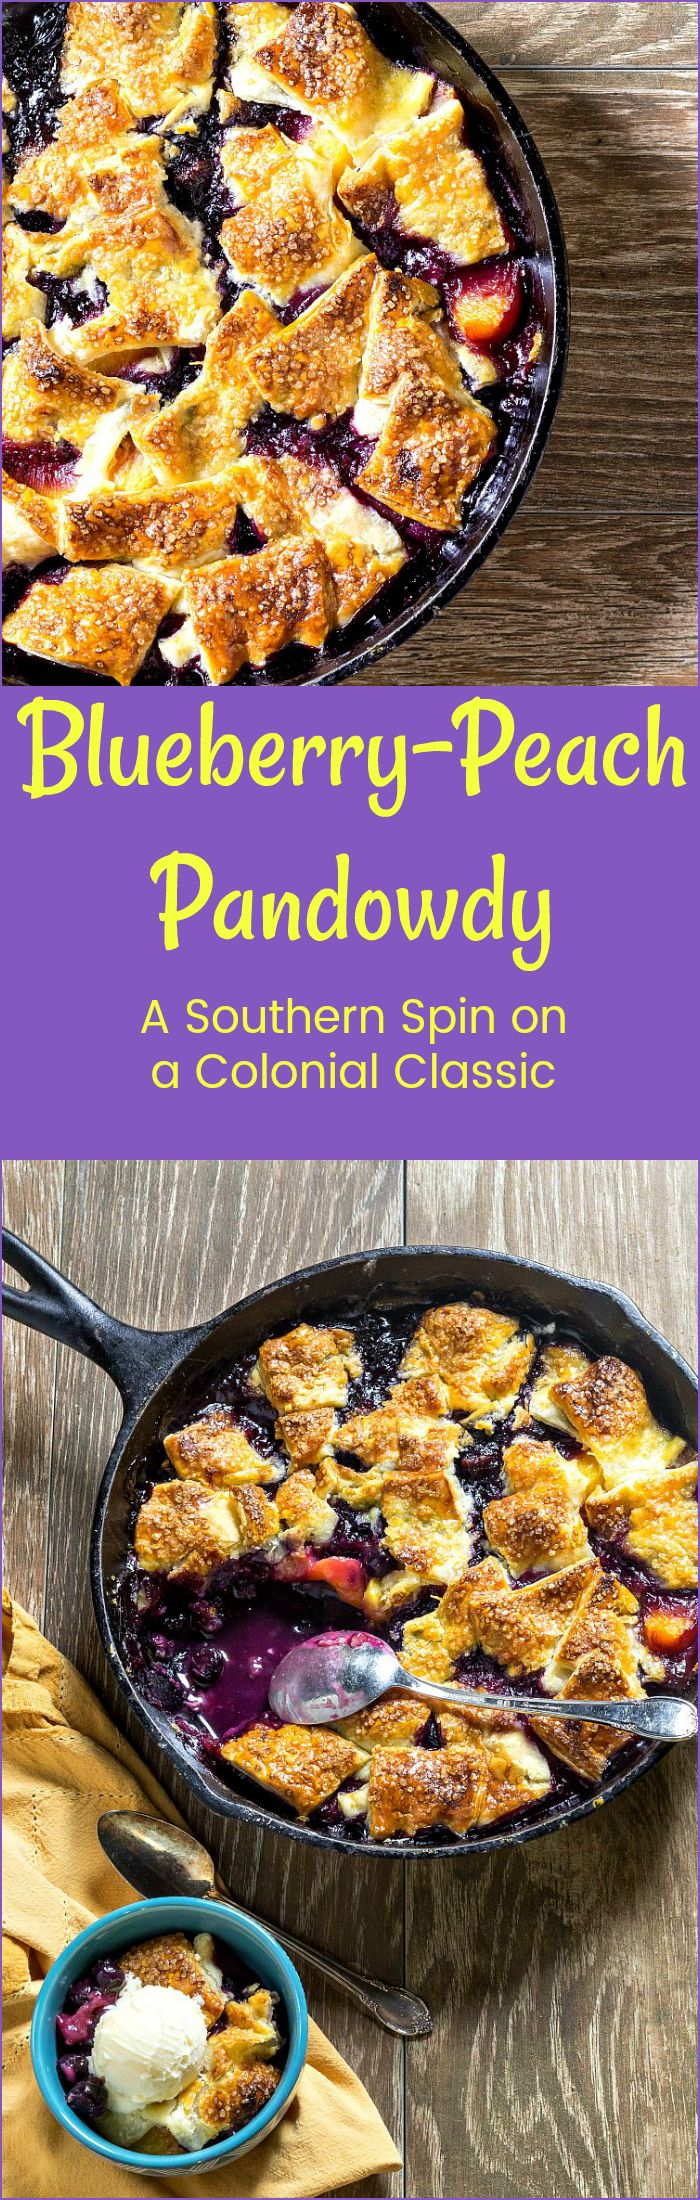 Blueberry Peach Pandowdy takes juicy, seasonal fruit, lightly sweetened and spiced, and pairs it with buttery pastry both in the fruit and on top. The result is poached fruity dumplings and fruit inside and crisp, flaky pastry on top. A homey dessert dating from Colonial times, pandowdy is most often made with apples. But that doesn't mean you can't use your favorite fruit! Try this blueberry peach version. You're going to love this fruity dessert!   pastrychefonline.com